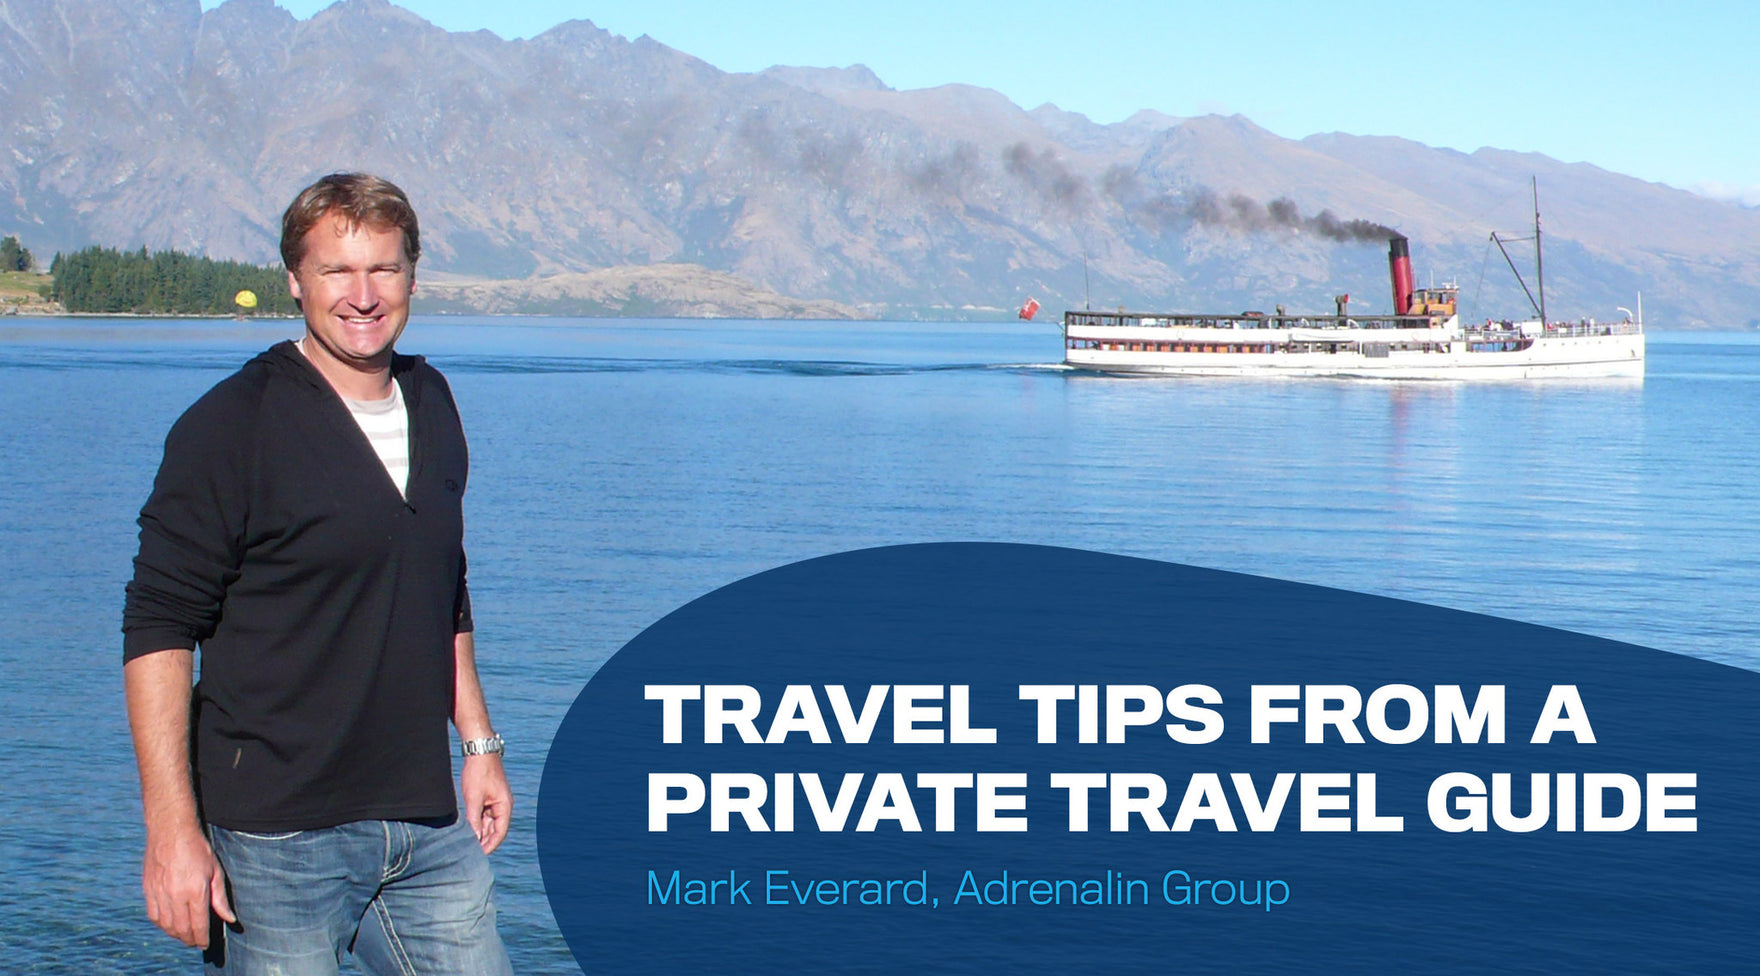 TRAVEL TIPS FROM A PRIVATE TRAVEL GUIDE